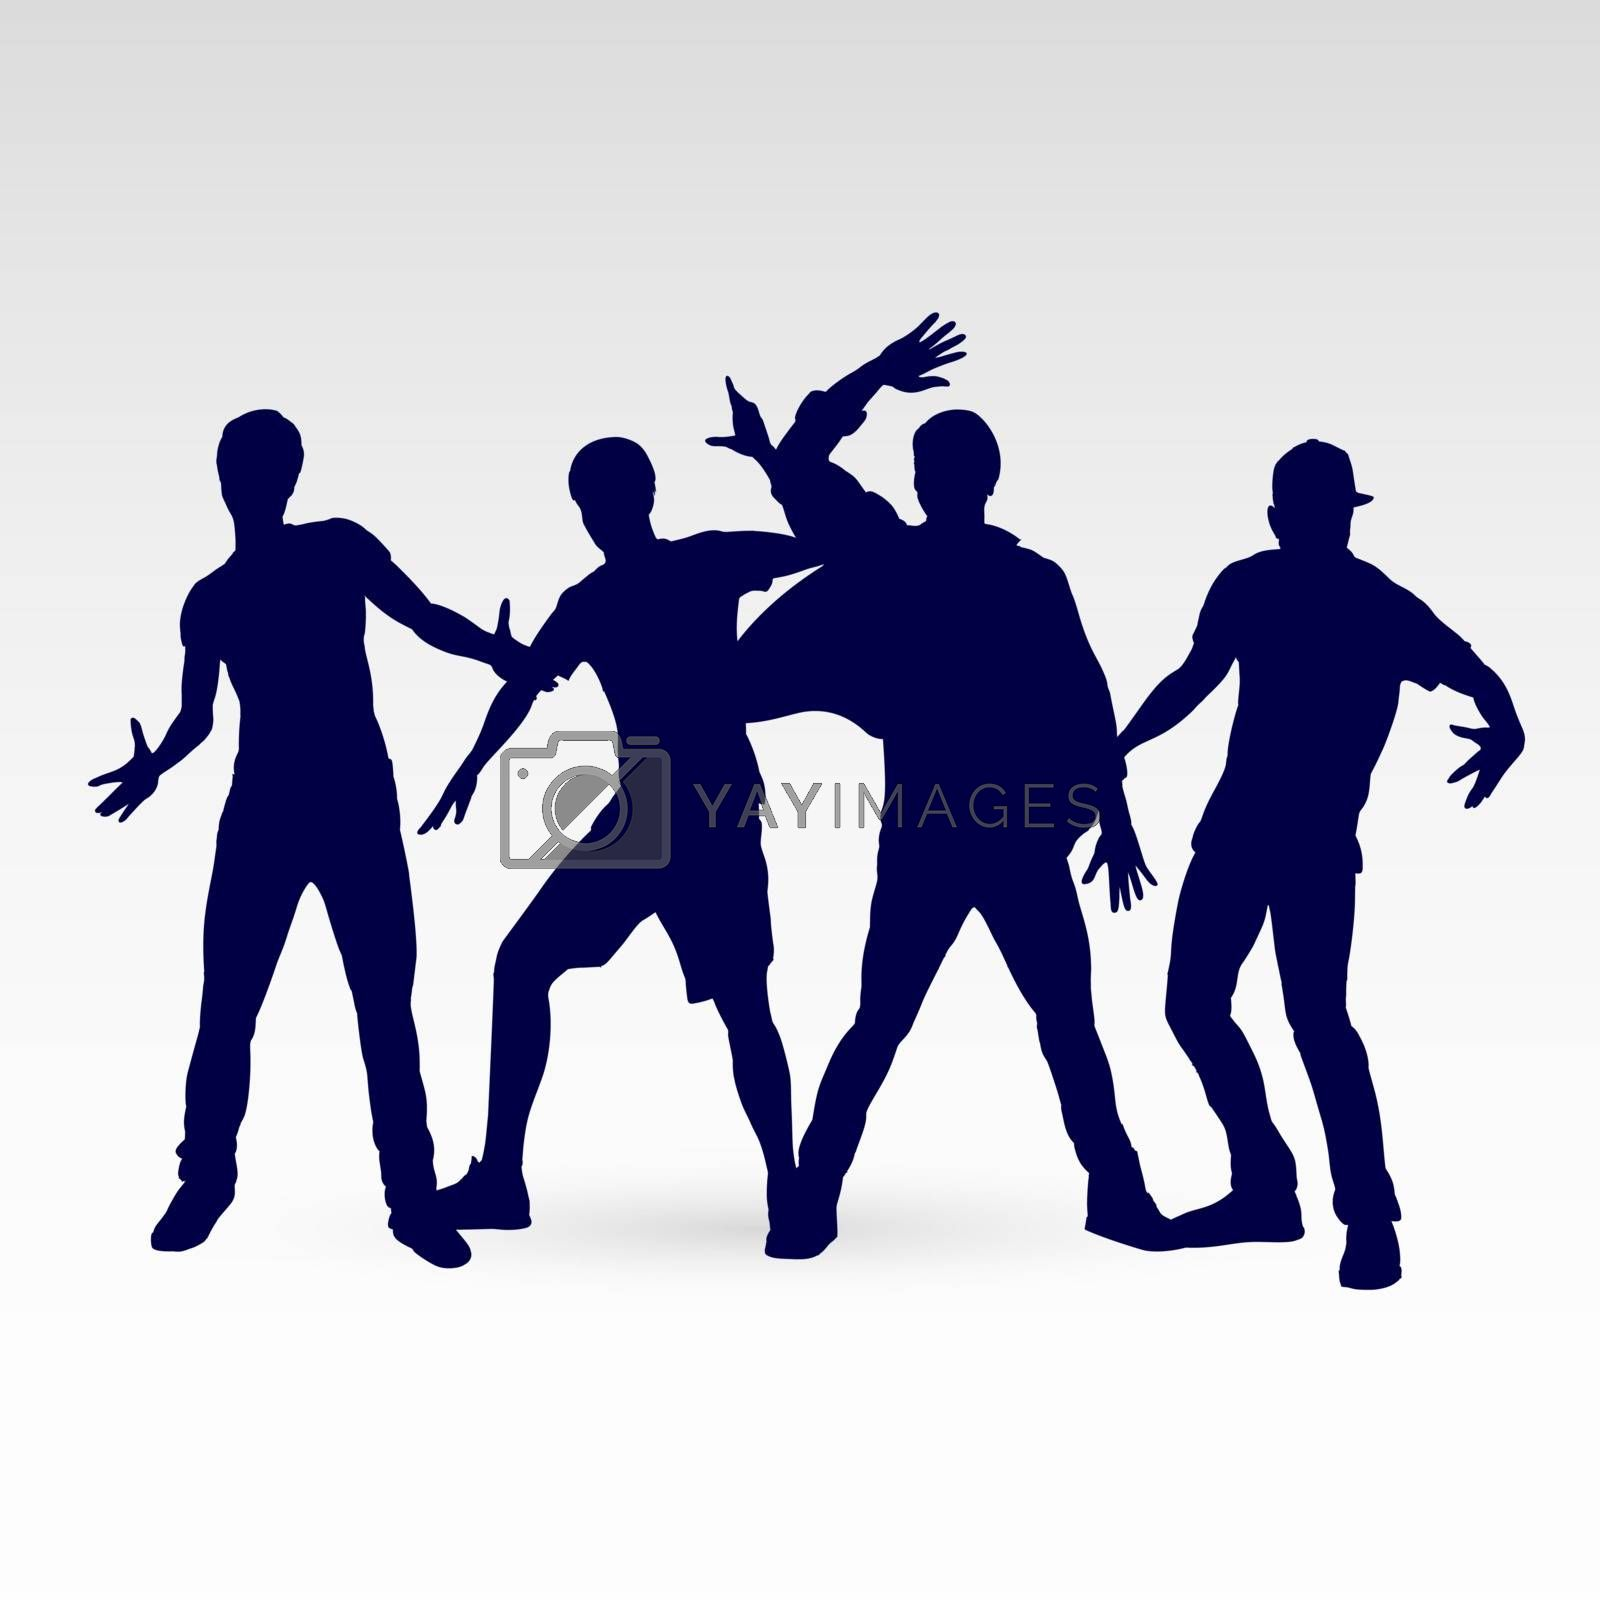 Set of Four Silhouette Dancing Males in Different Poses on the Dance Floor. Hip Hop Choreography